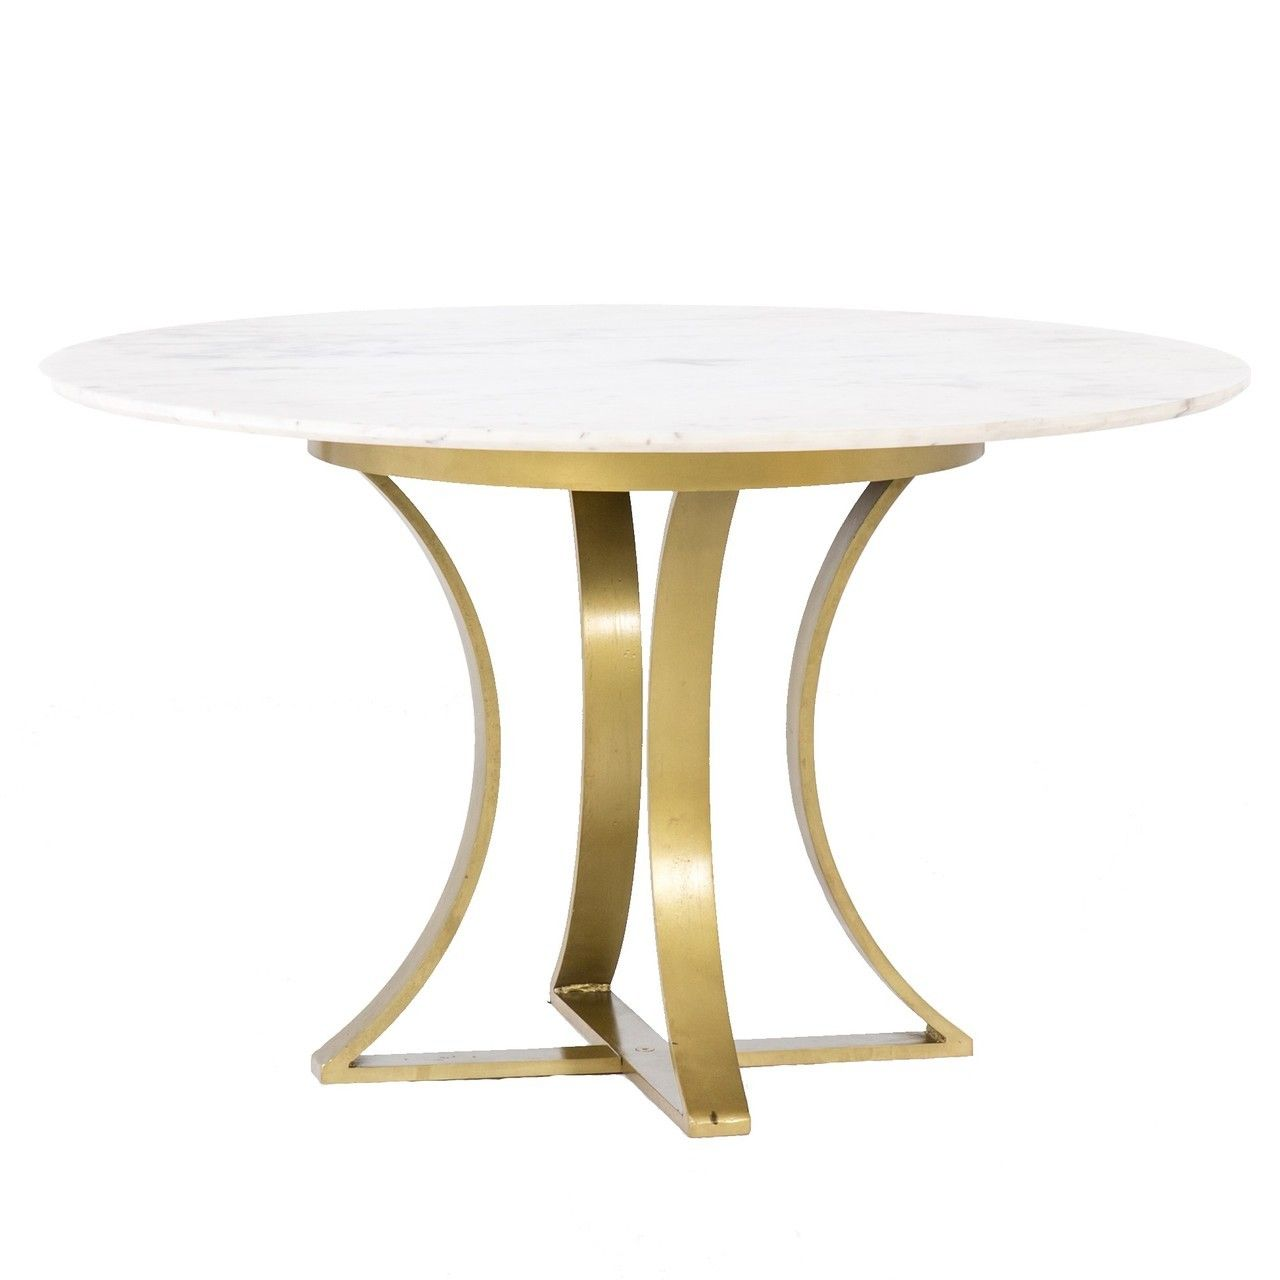 Gage White Marble Antique Brass Leg Round Dining Table 48 In 2020 Dining Table Round Dining Table Round Marble Dining Table